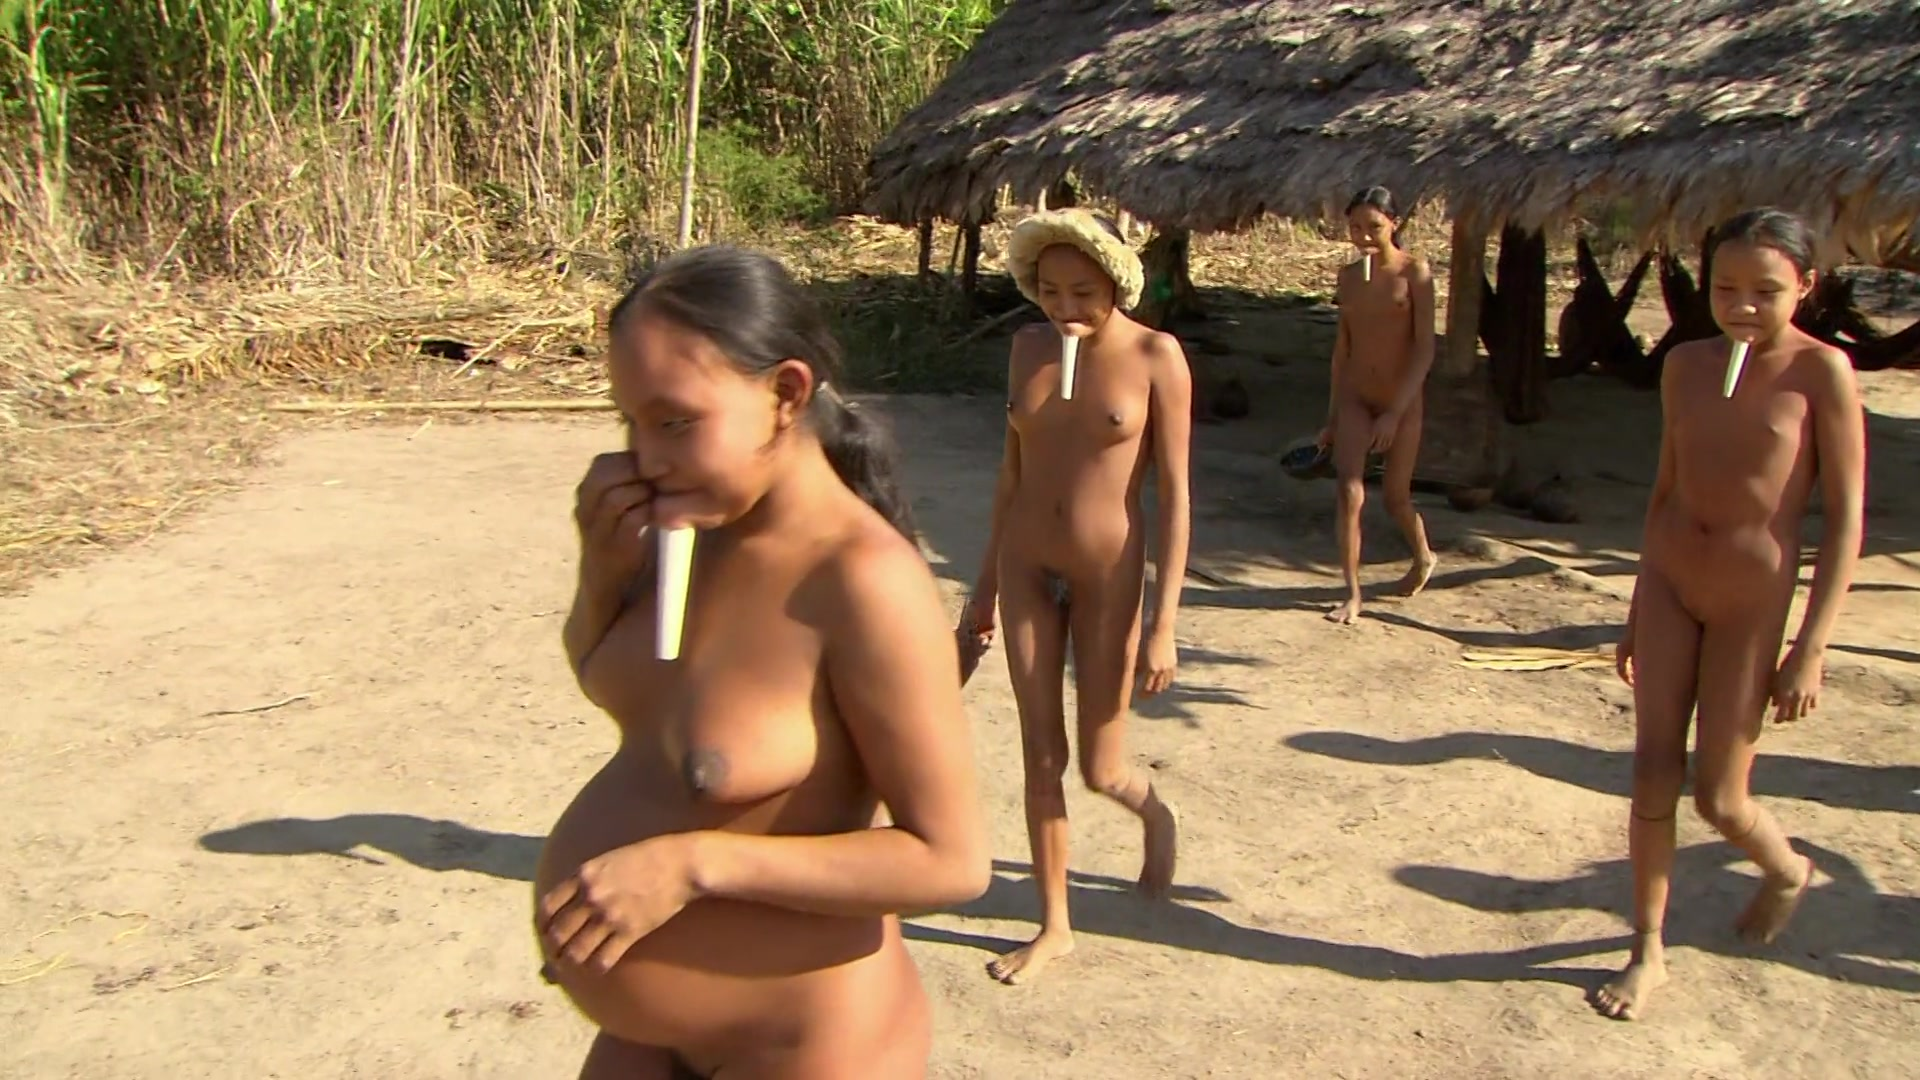 English girl sex with amazon tribe erotic image